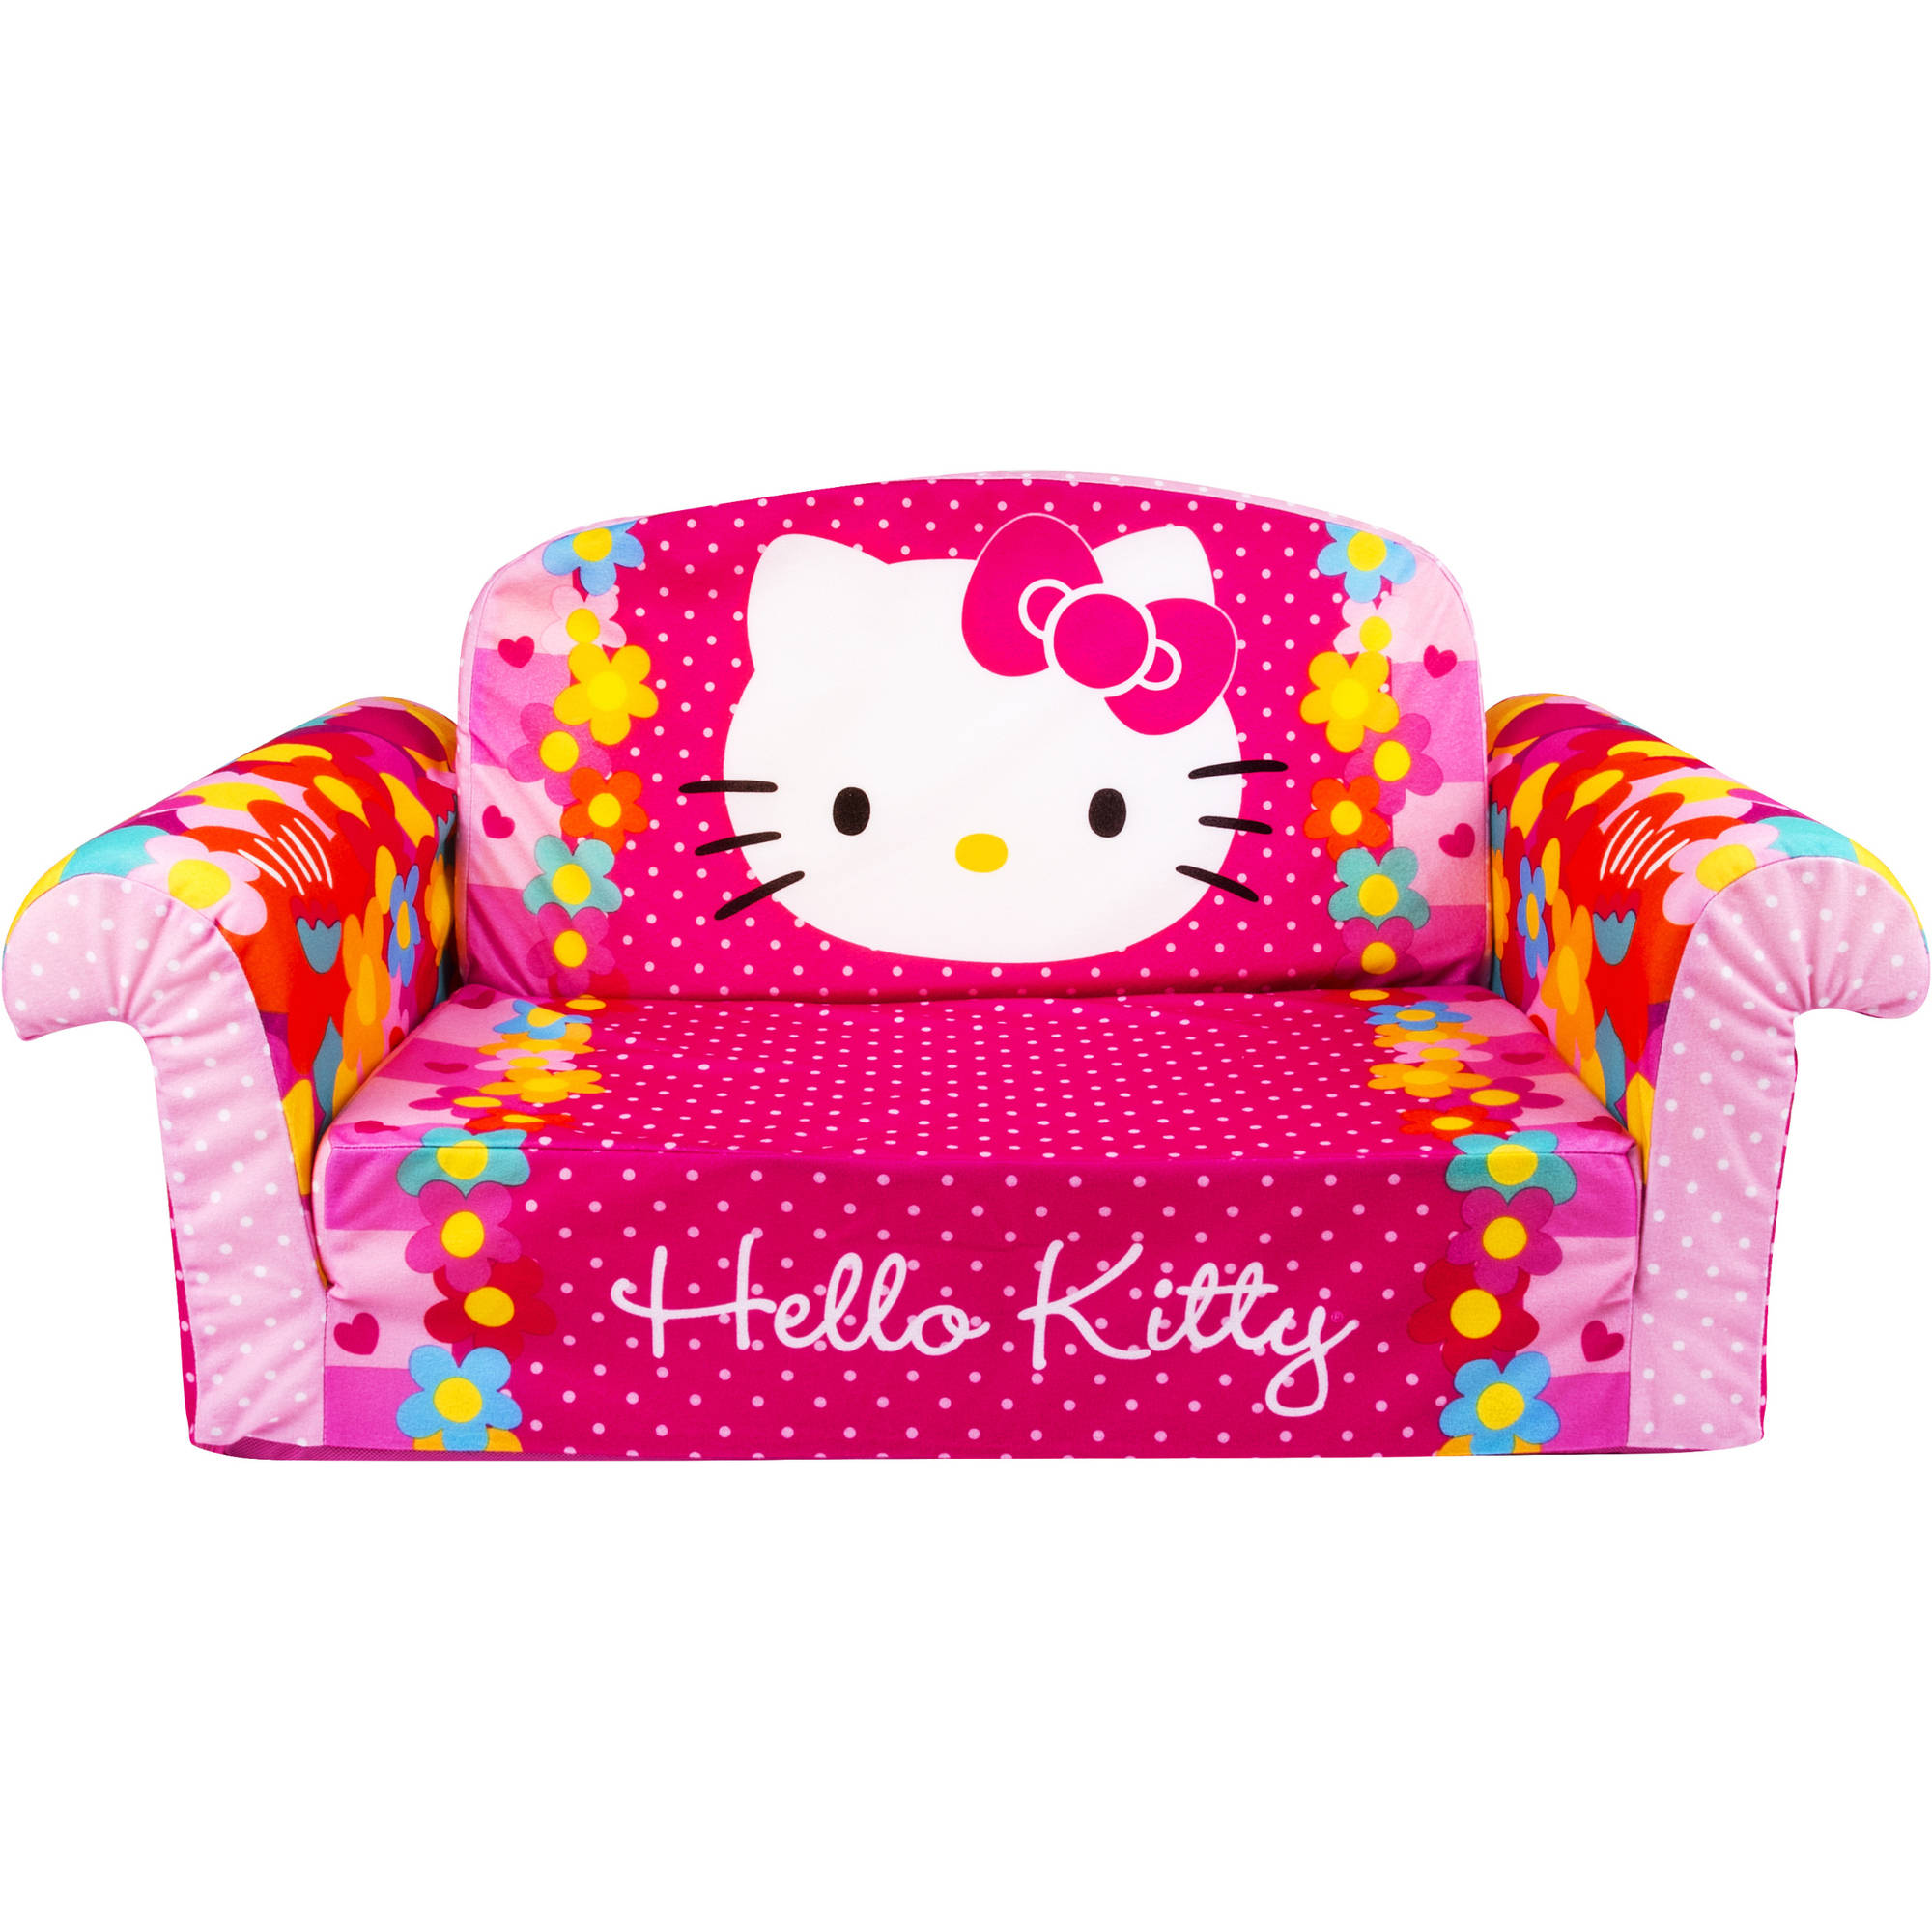 Hello Kitty, Toddler 2 in 1 Furniture Flip Open Sofa Chair